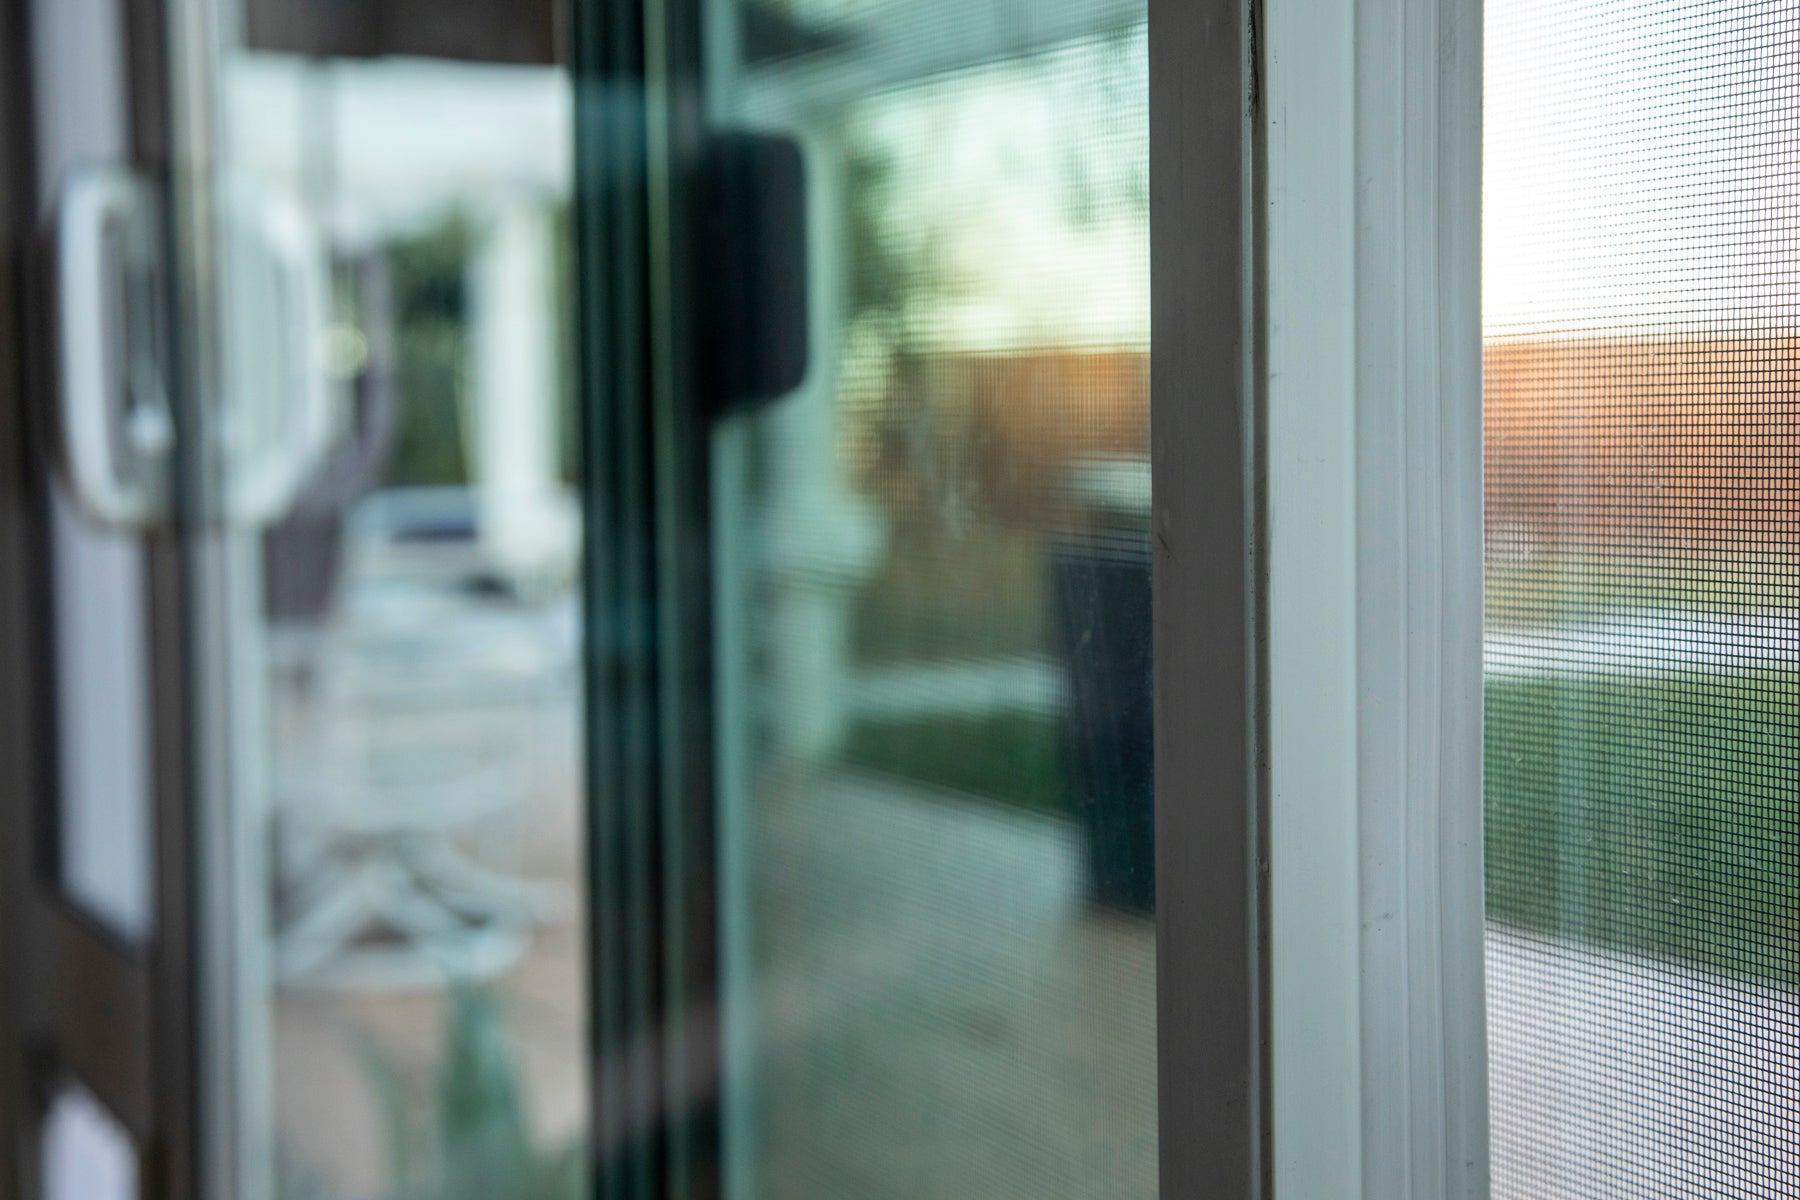 Energy efficient homes have dual pane windows as well as LoE glass to help insulate